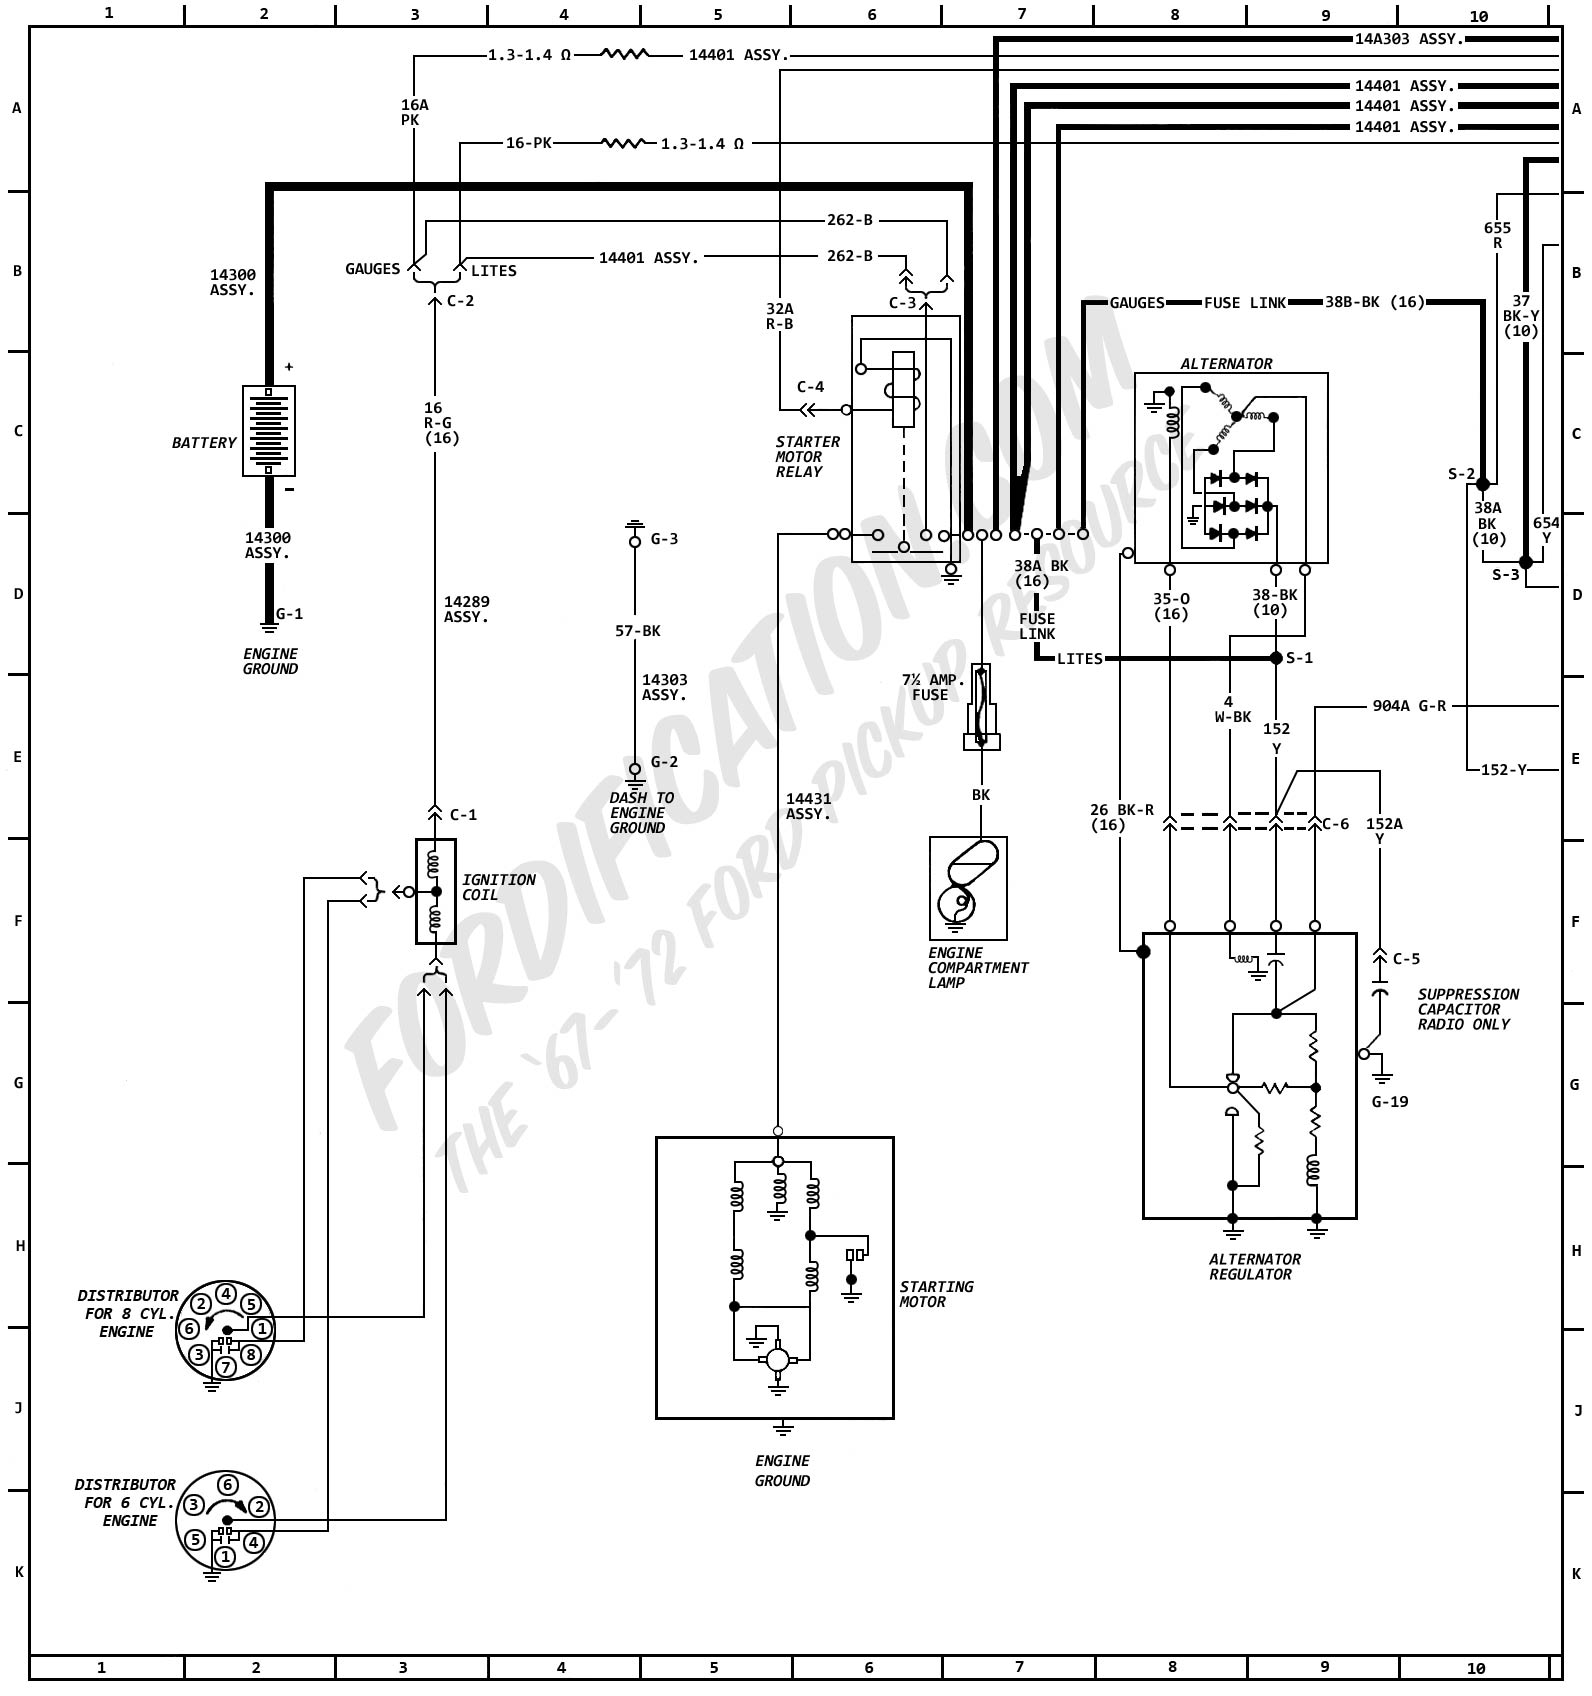 1972 ford truck wiring diagrams - fordification.com 1972 f100 wiring diagram #2